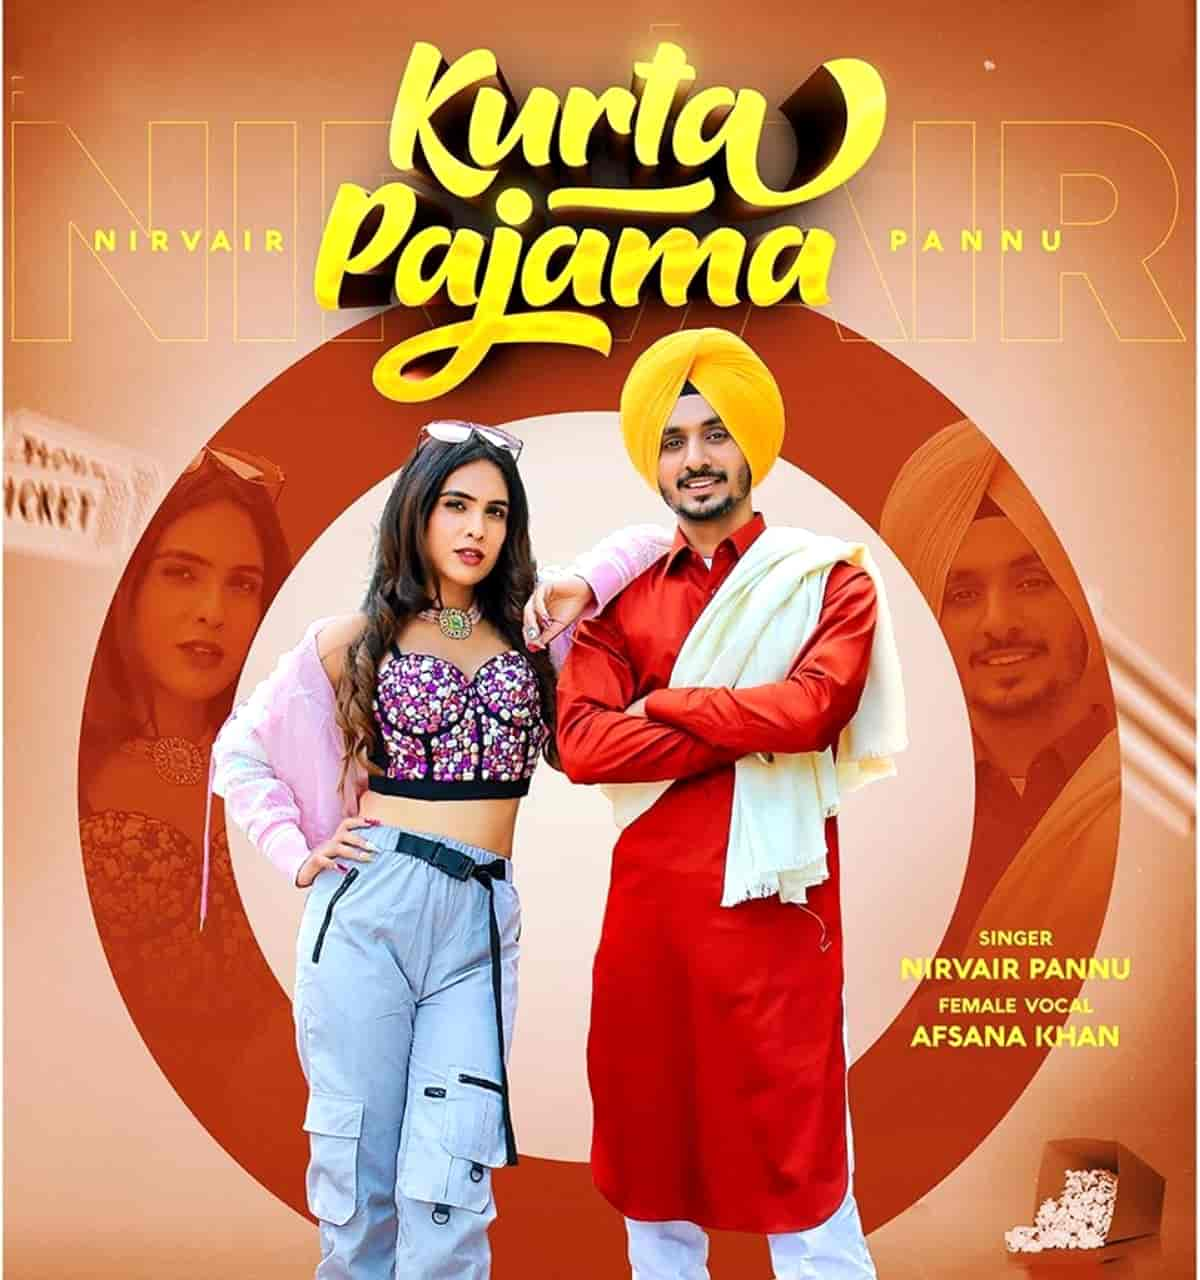 Kurta Pajama Punjabi Song Image By Nirvair Pannu and Afsana Khan